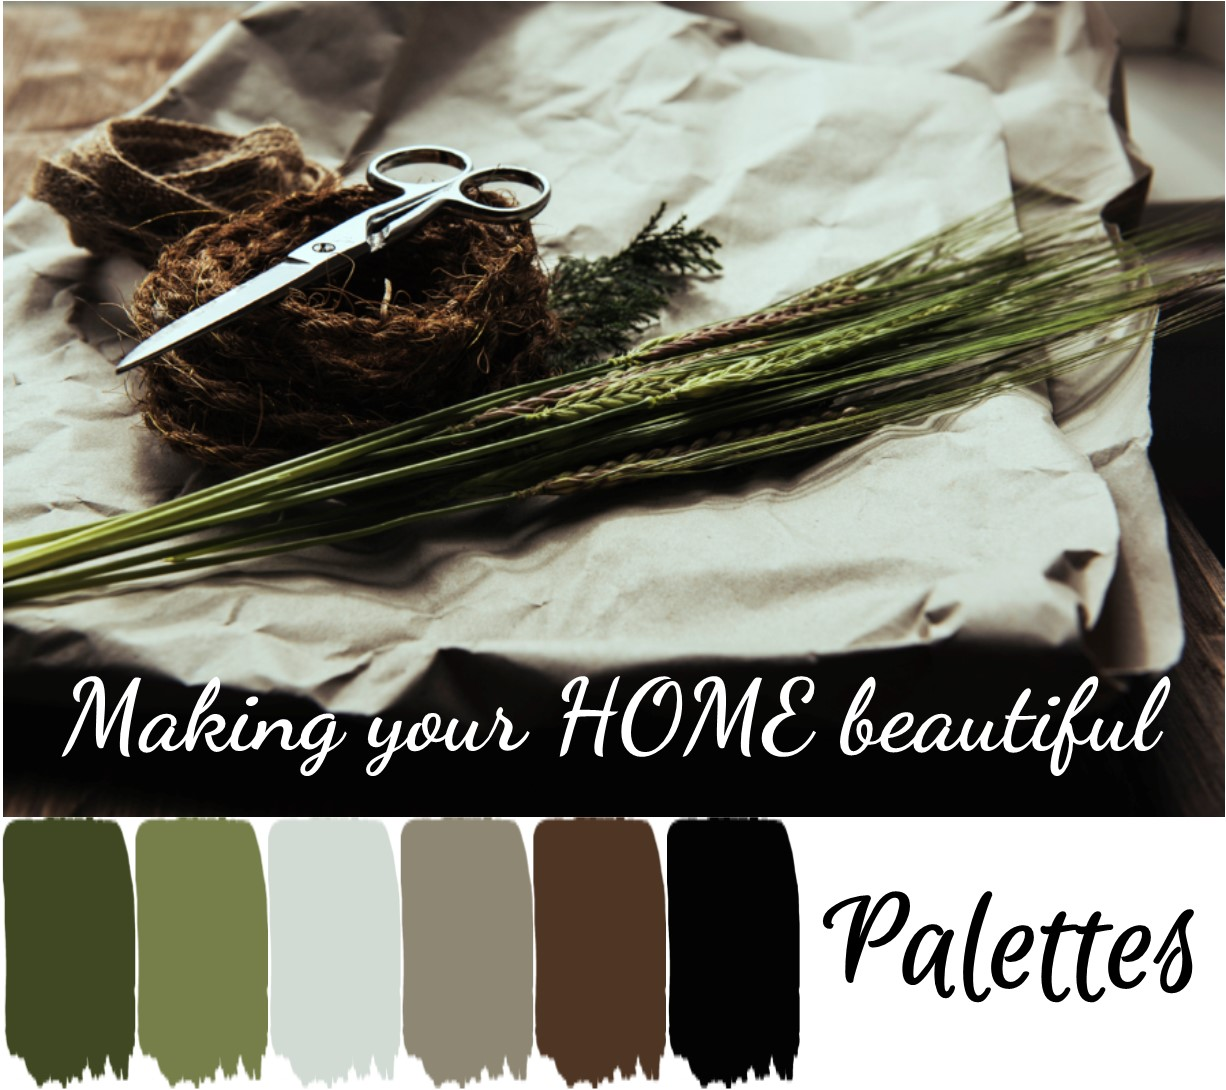 Beautiful interior decorating schemes can be put together using a natural colour palette